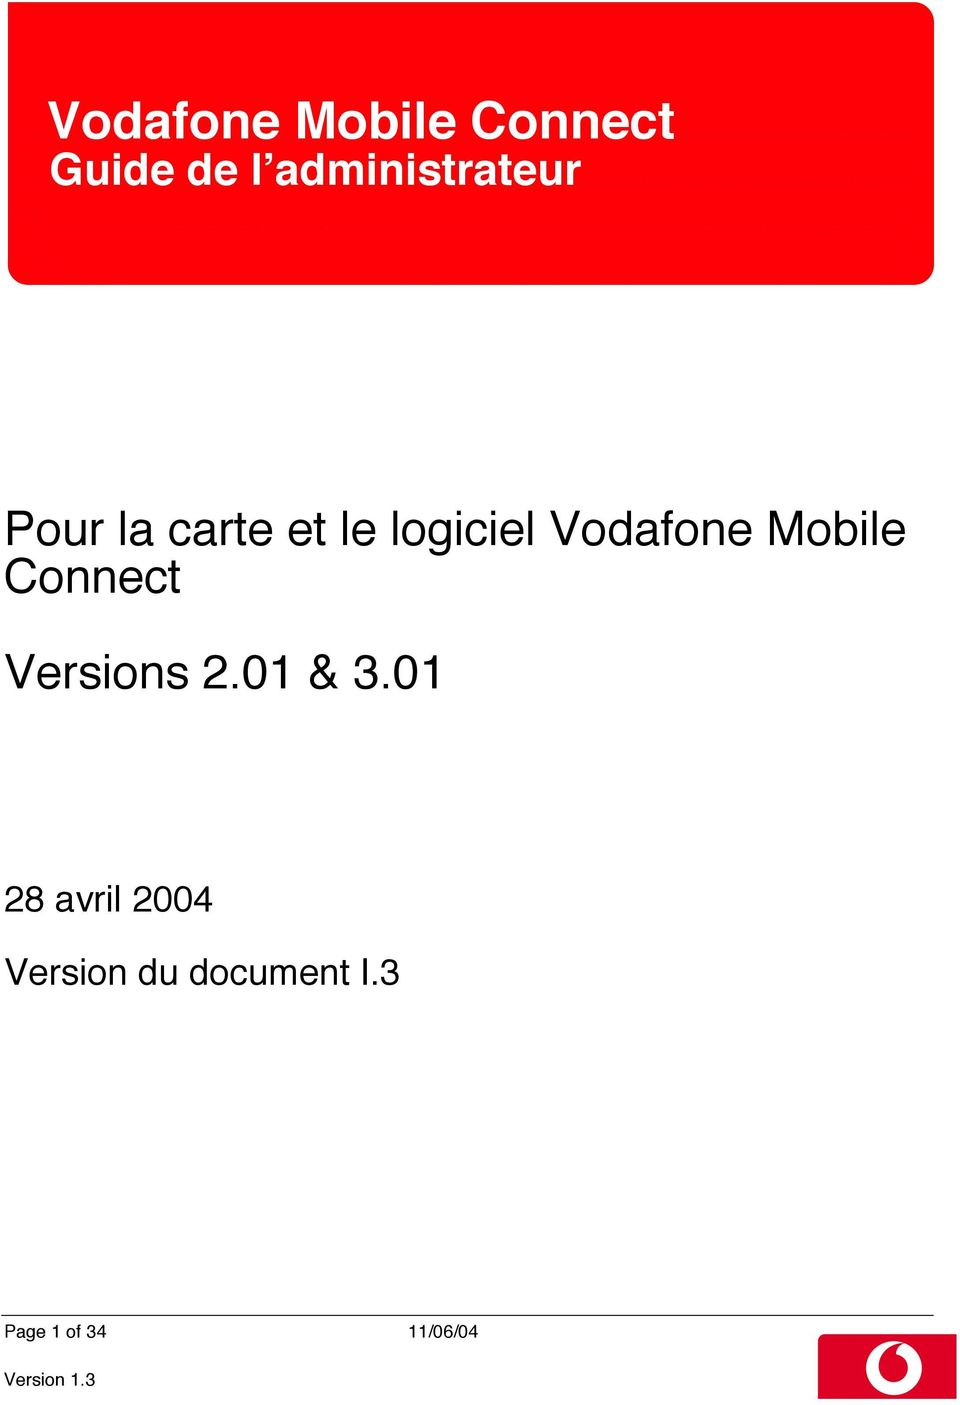 Vodafone Mobile Connect Versions 2.01 & 3.